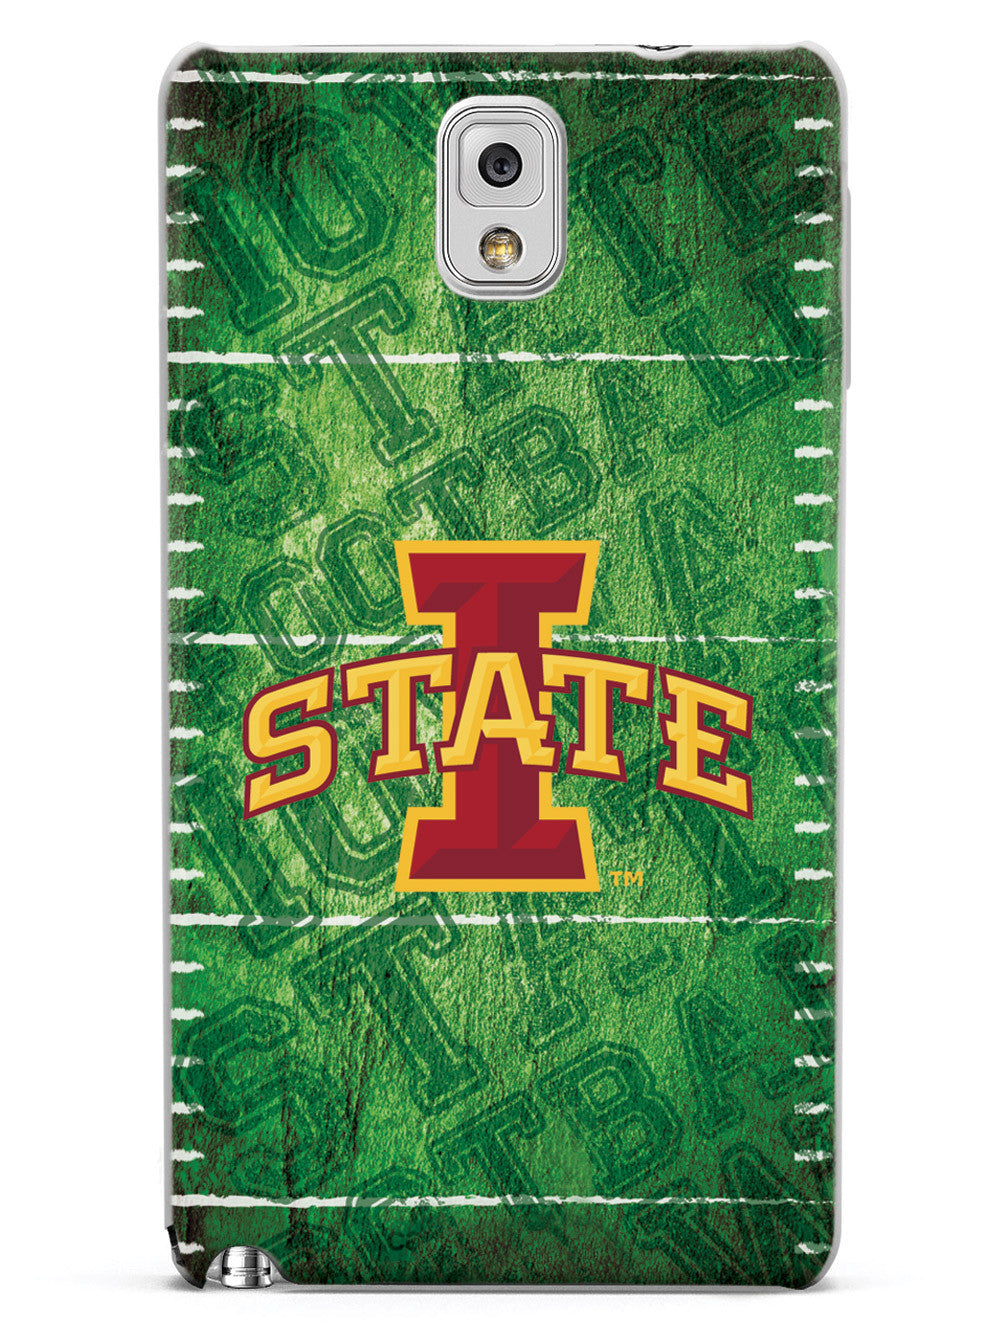 Iowa State University Cyclones - Football Case